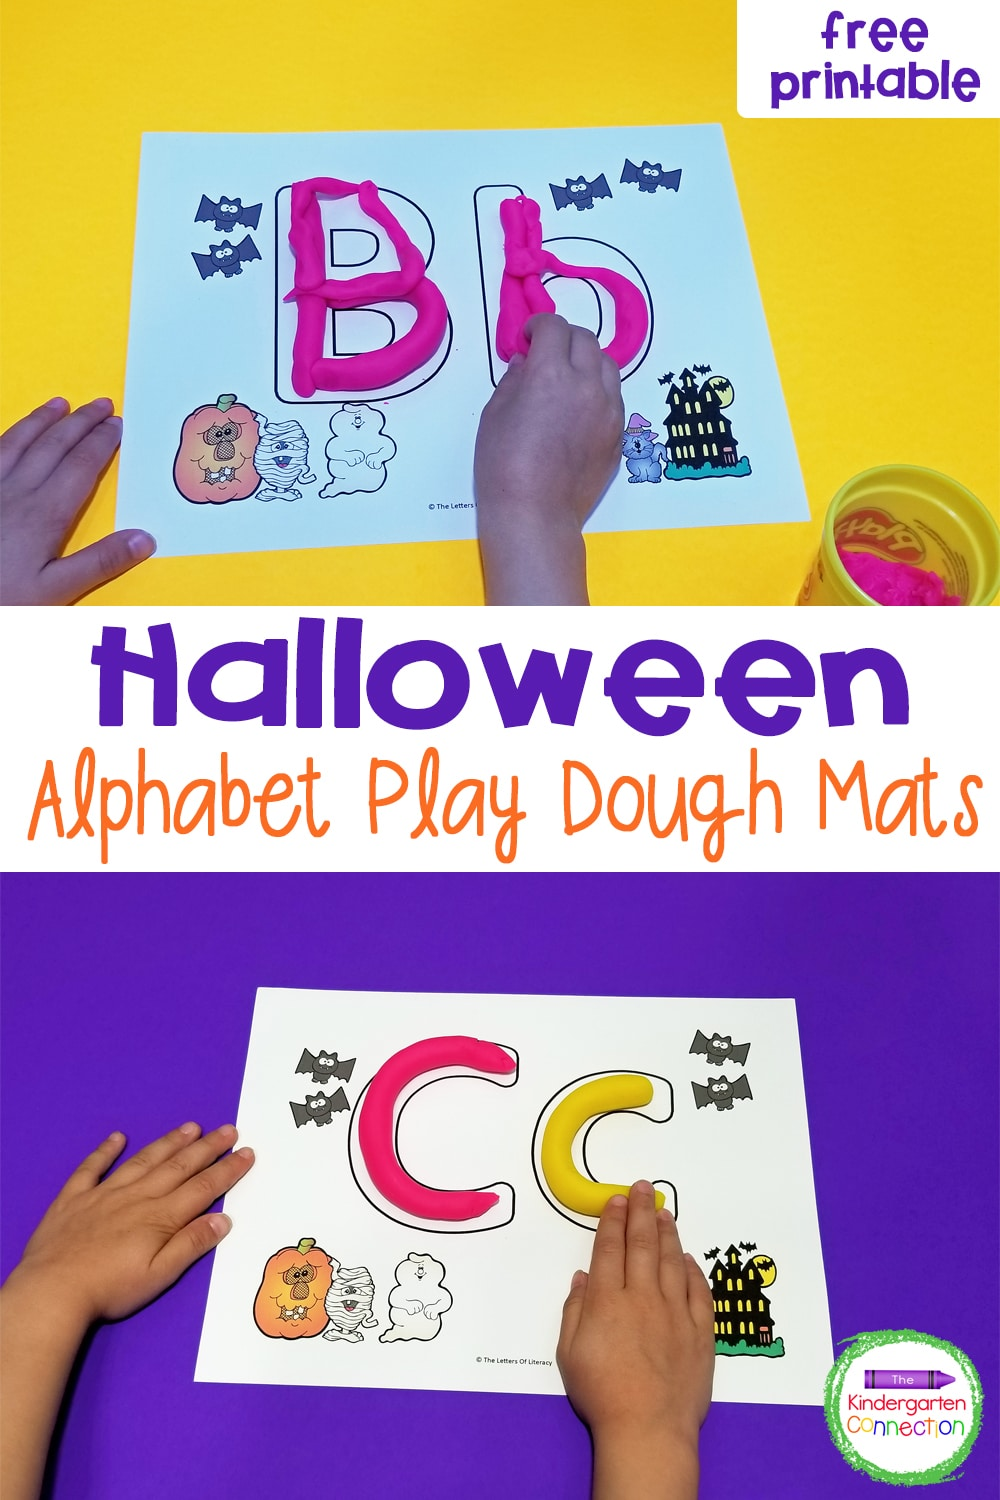 Practice fine motor skills and letter formation in a fun way with these free Halloween Alphabet Play Dough Mats for Pre-K & Kindergarten!